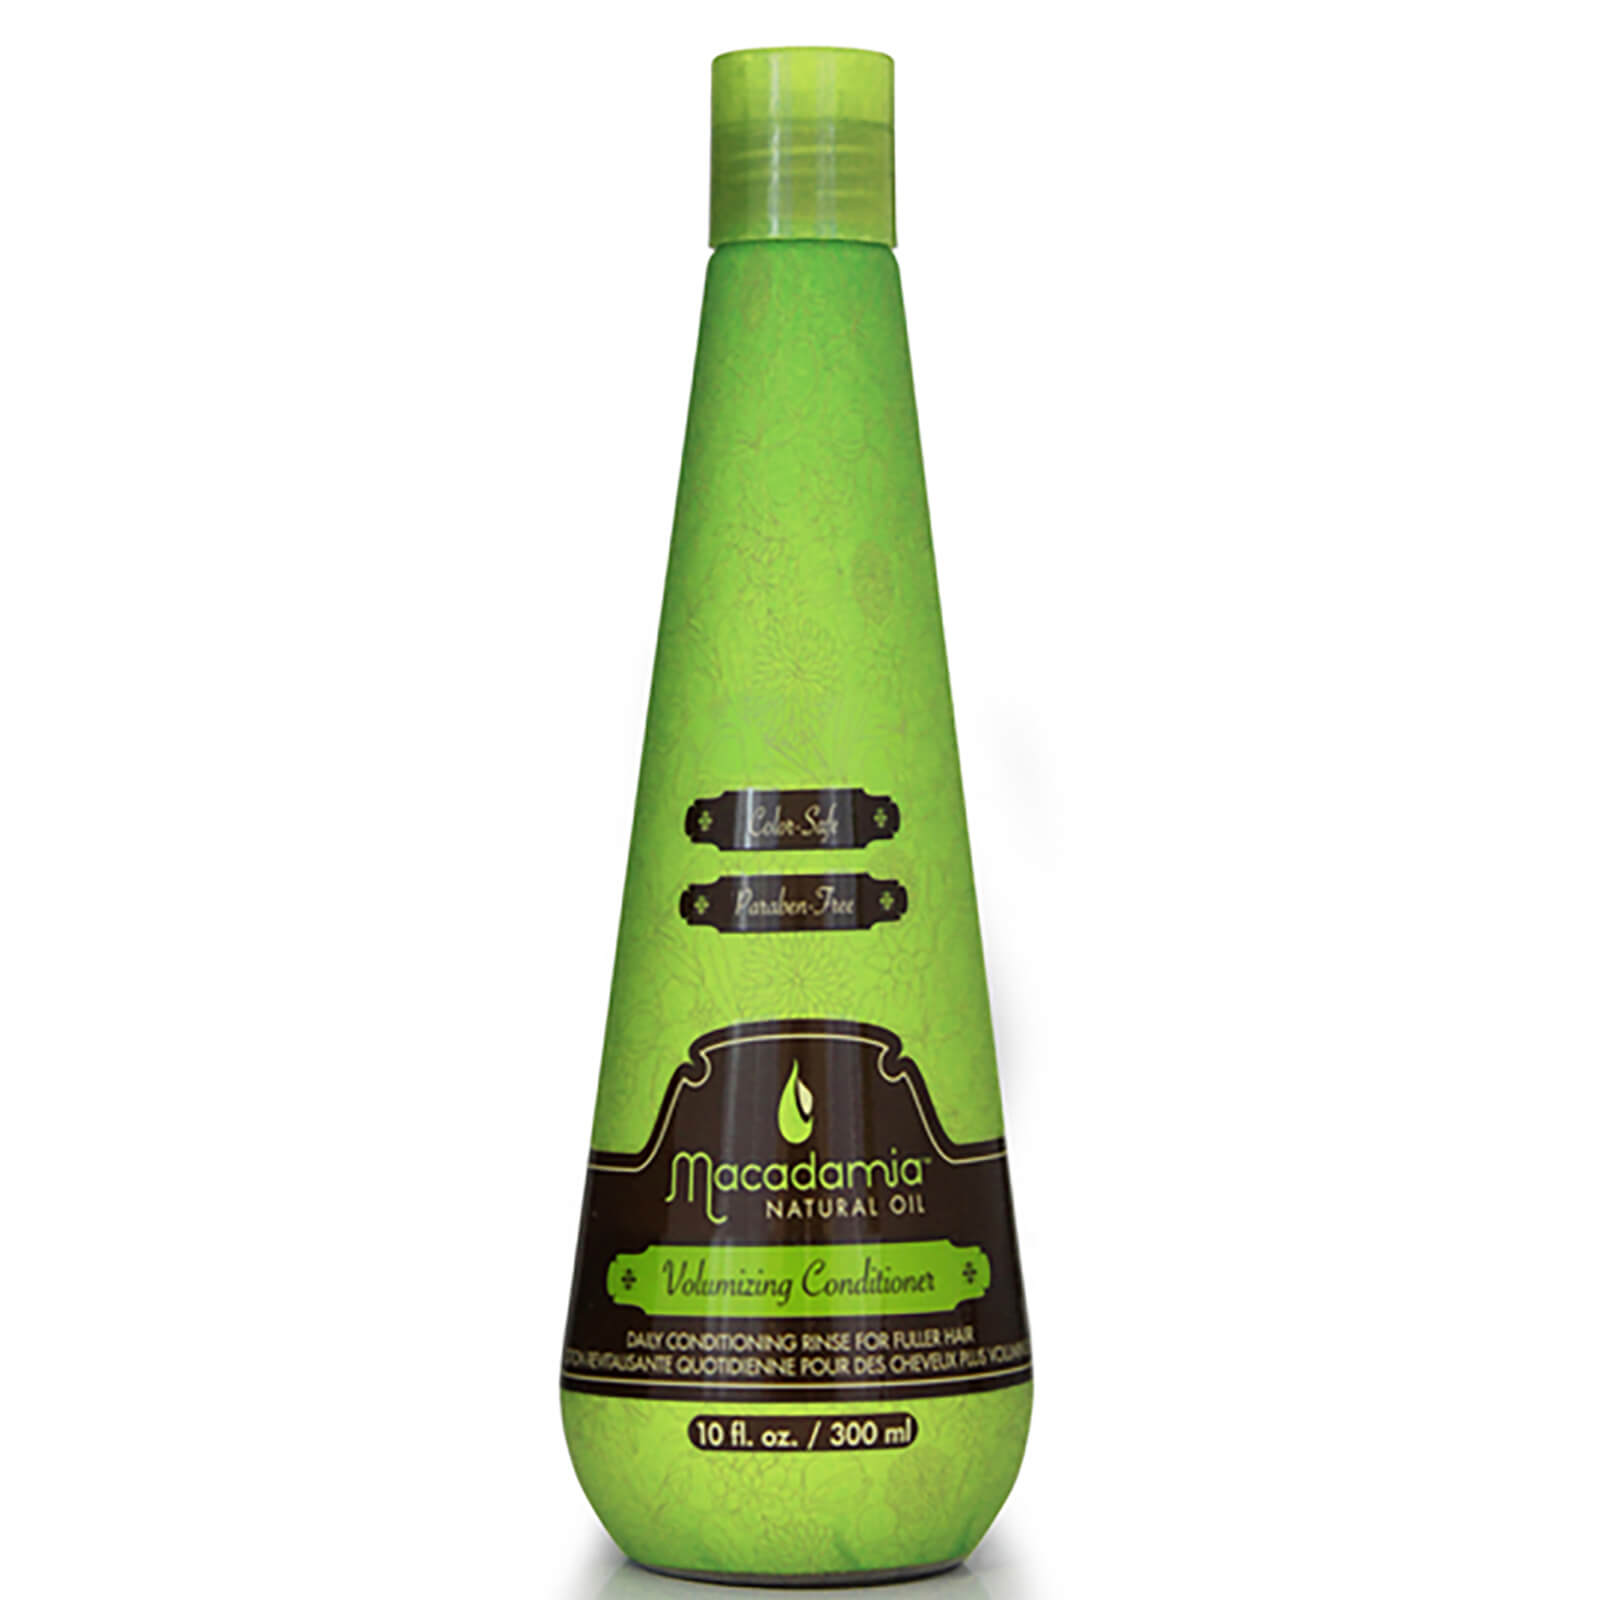 Macadamia Volumizing Conditioner 10.5oz (300ml)